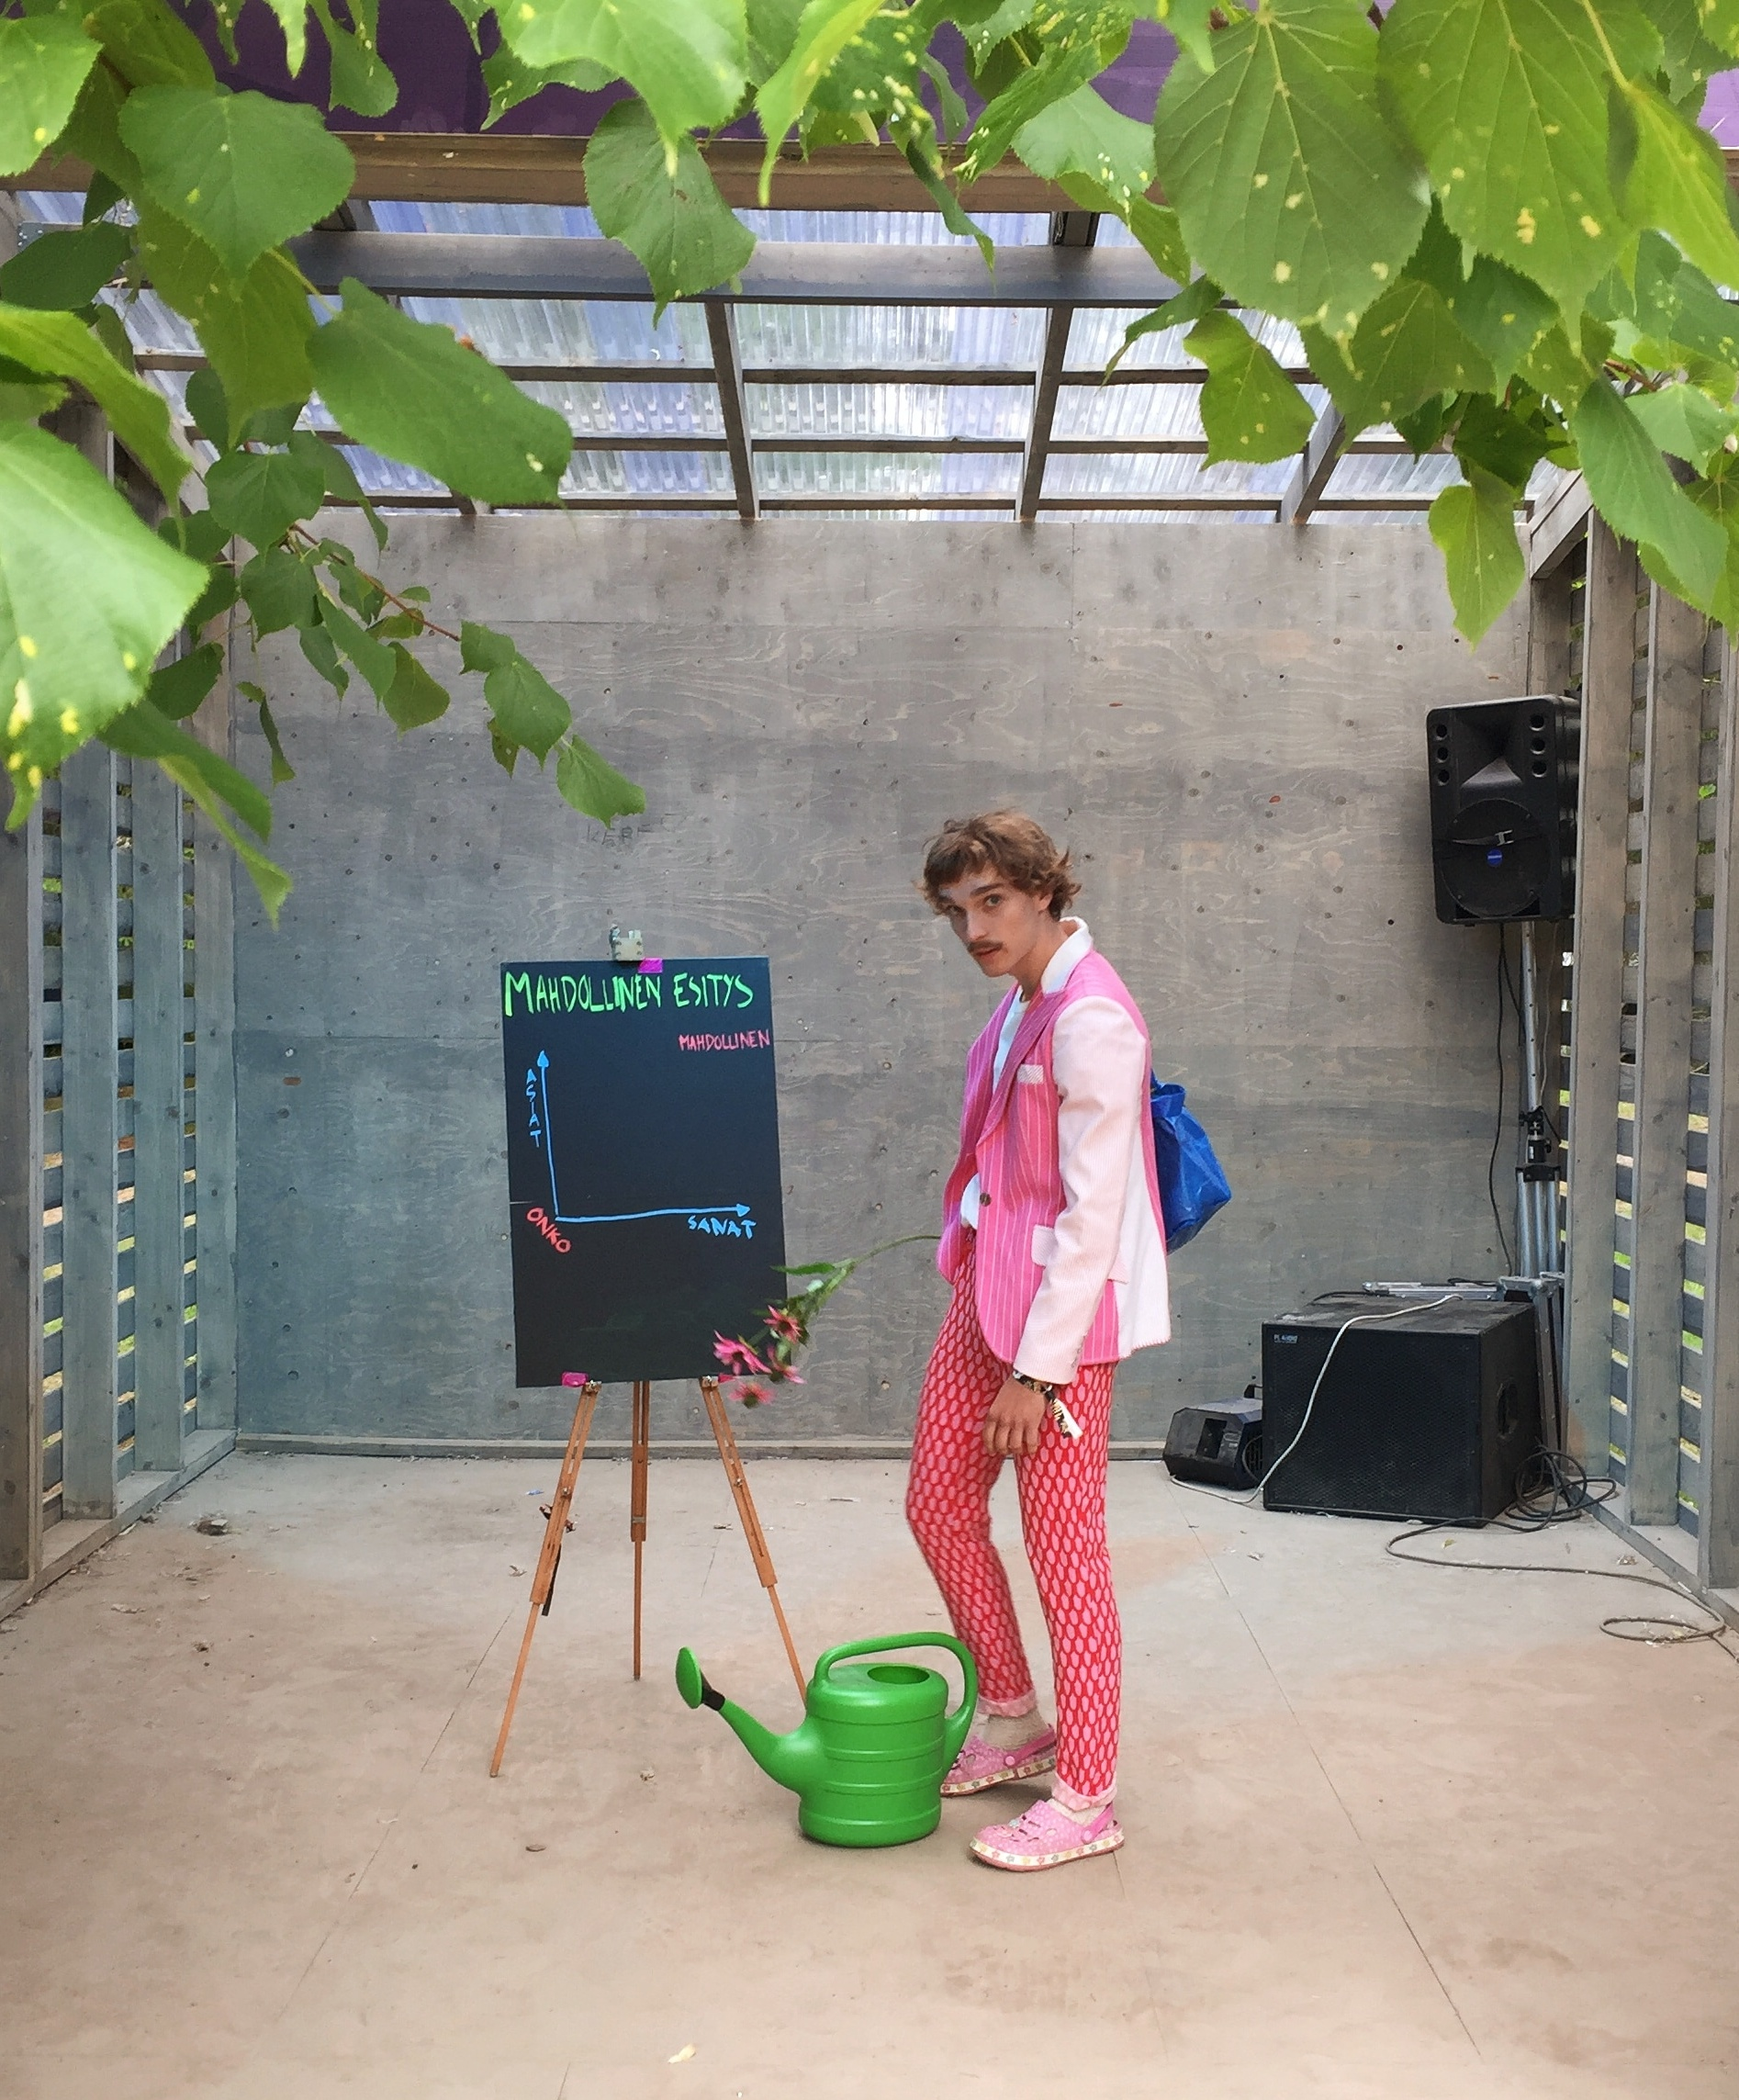 A person standing in a porch next to a watering can